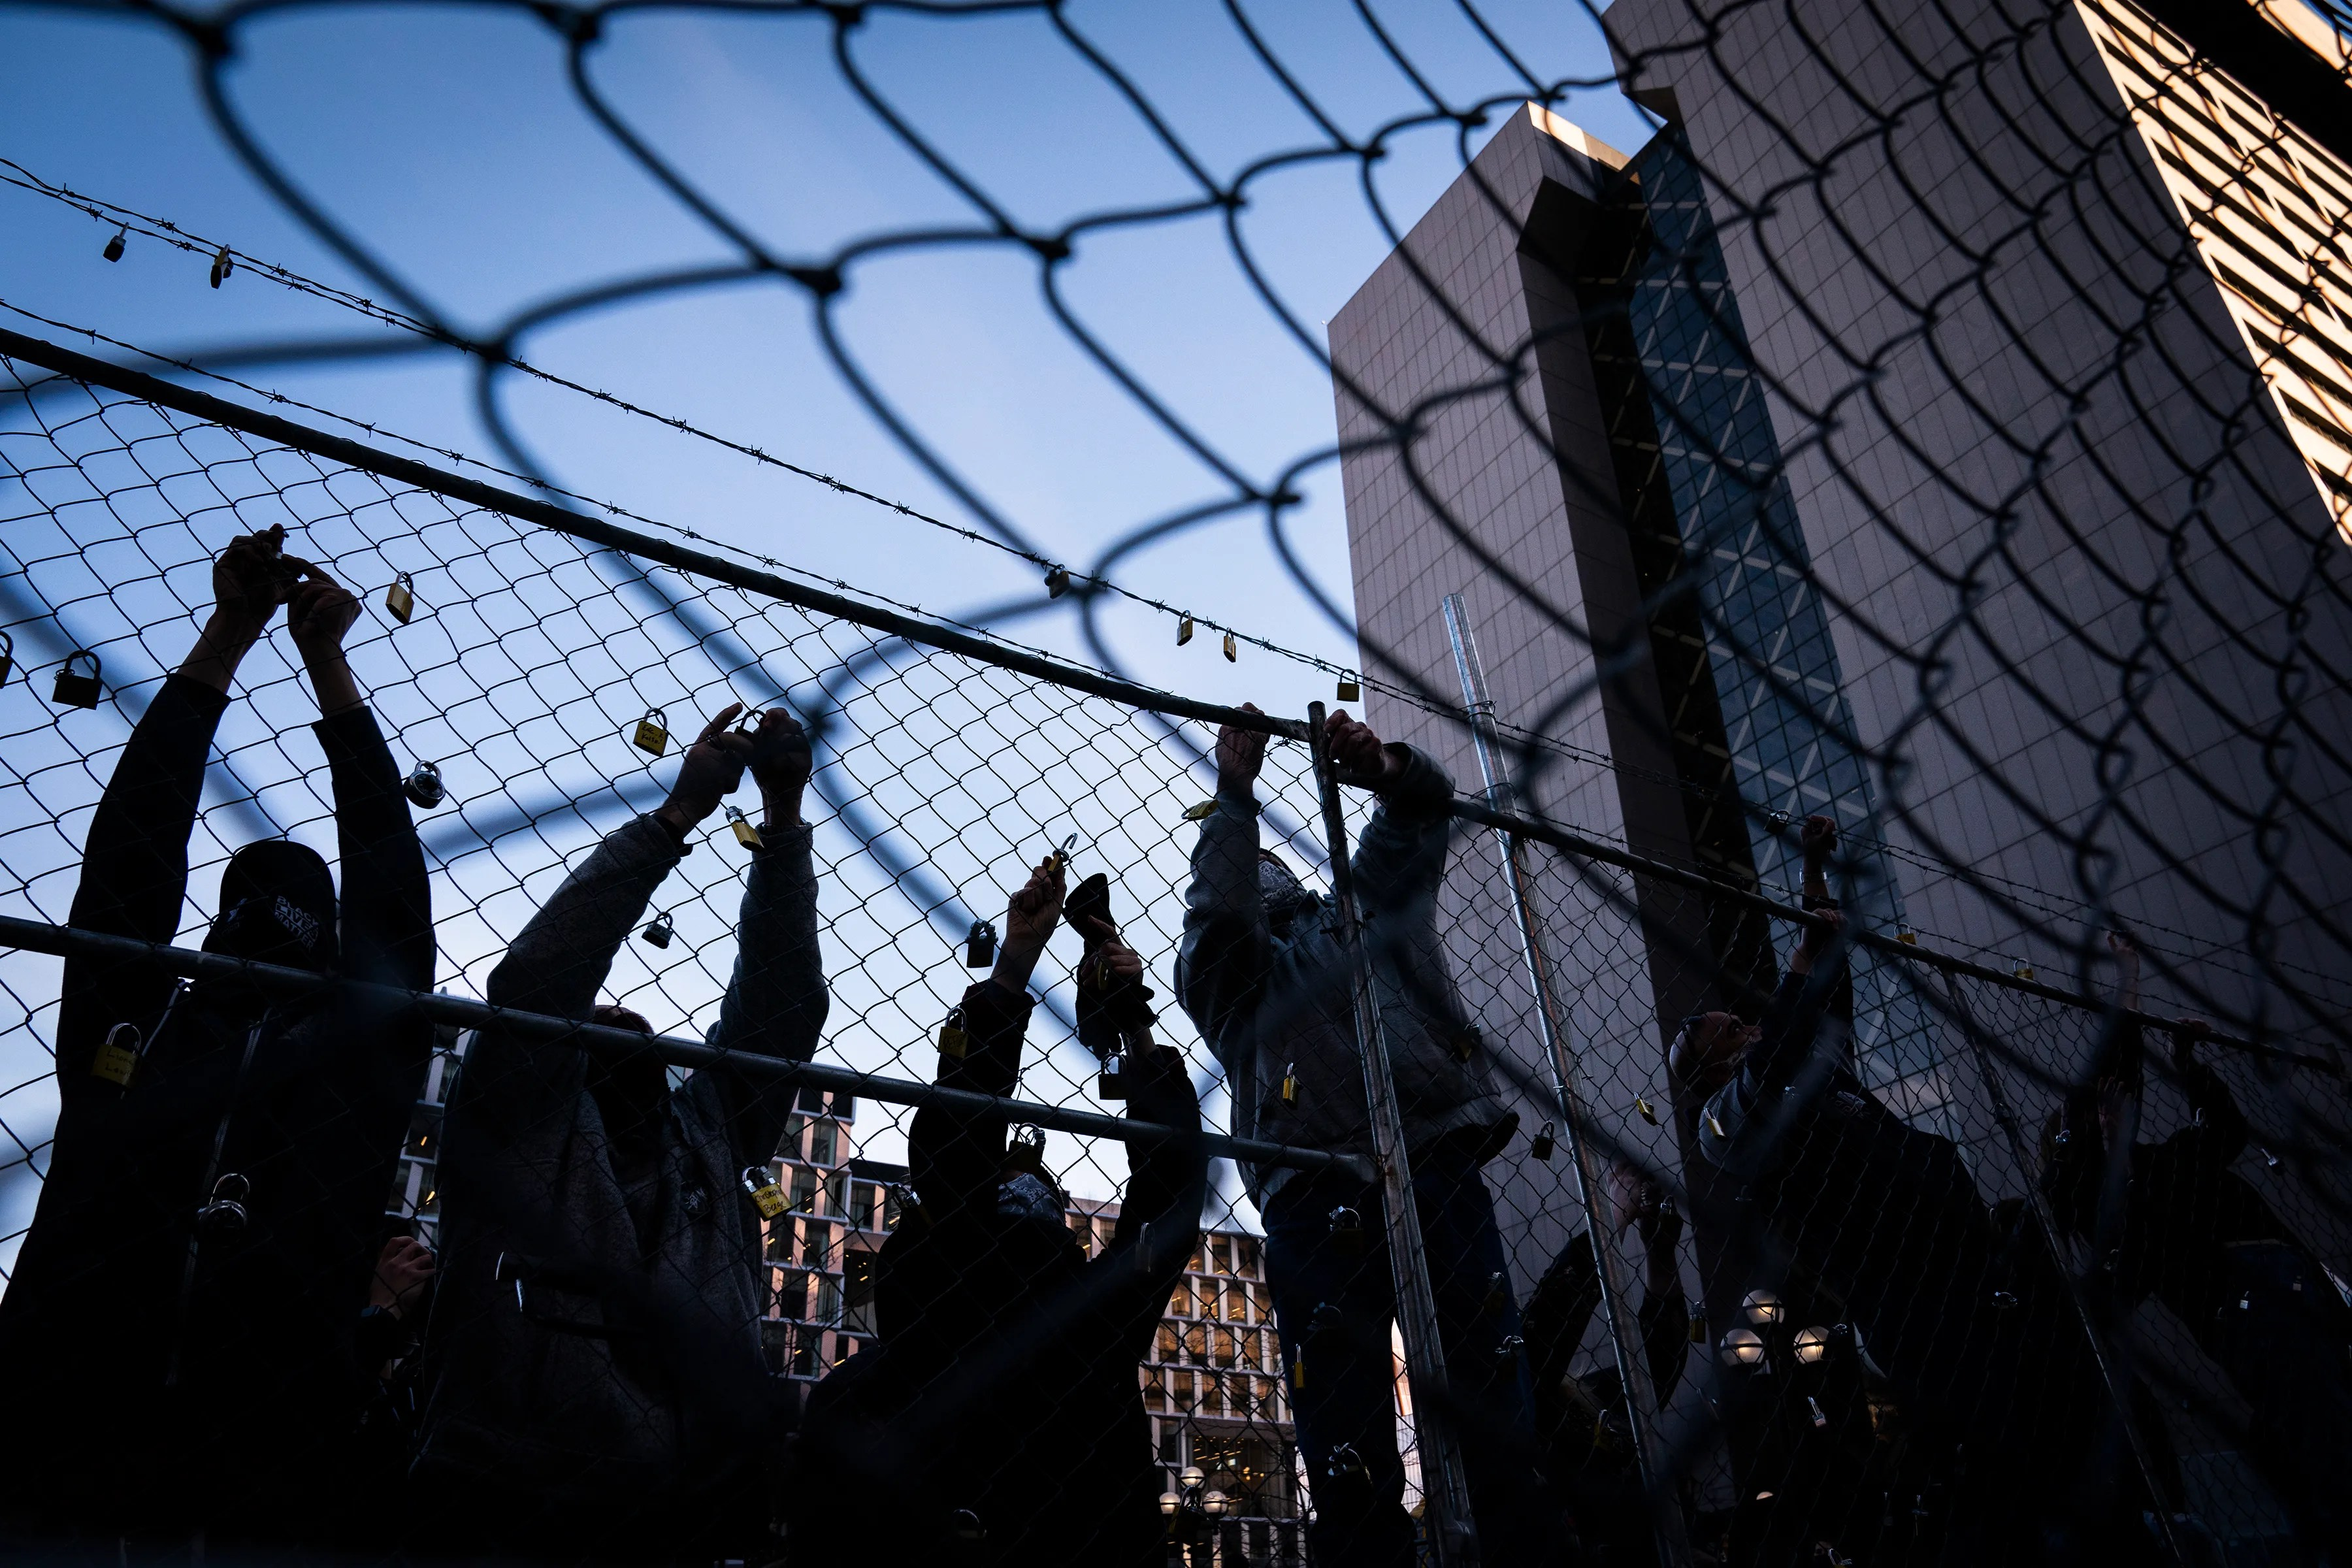 People place locks with the names of those killed by law enforcement in Minnesota on the fence outside the Hennepin County Government Center during the